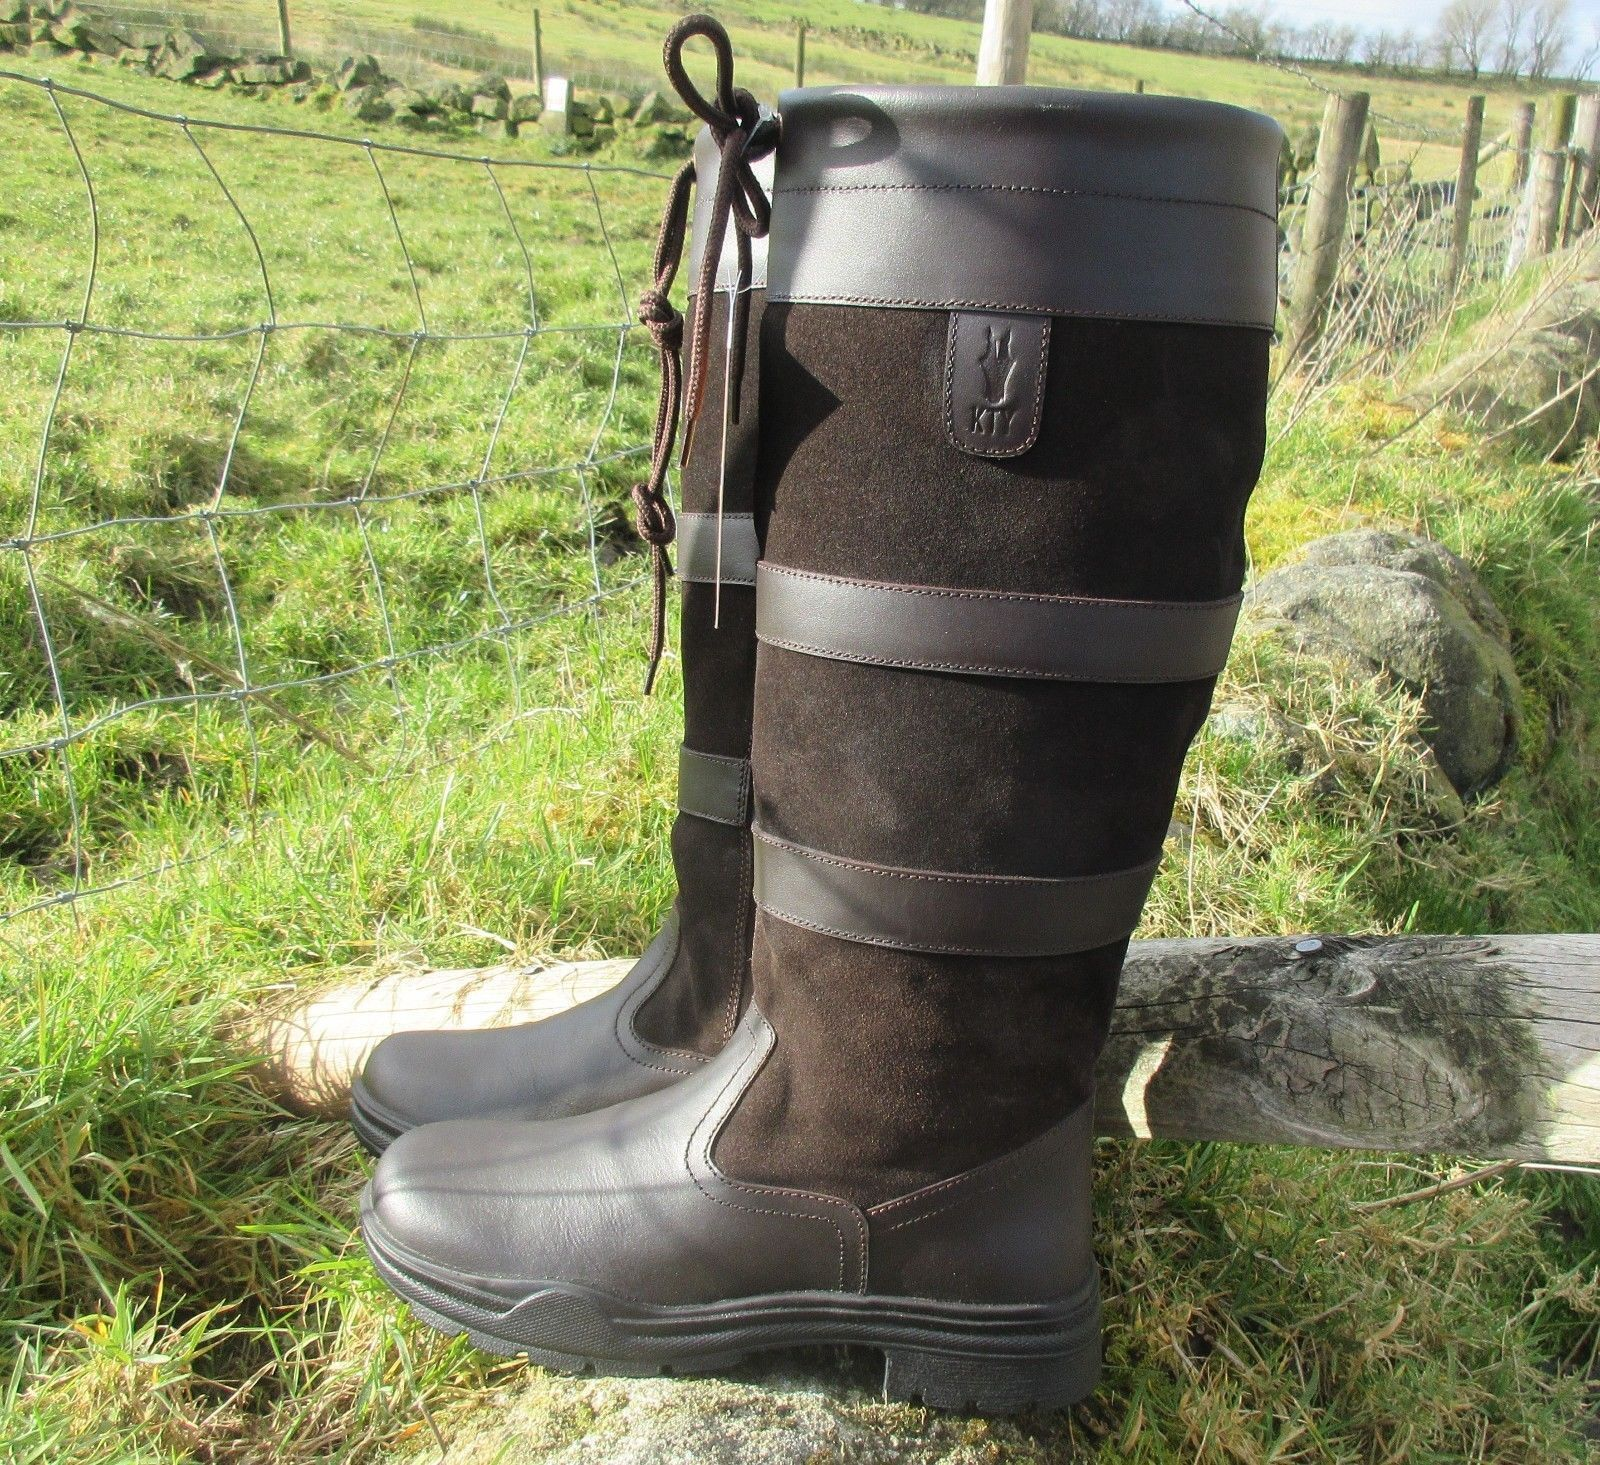 KTY Country    Riding Boots Value Long Leather Walking Quality Equestrian - cheap  great selection & quick delivery